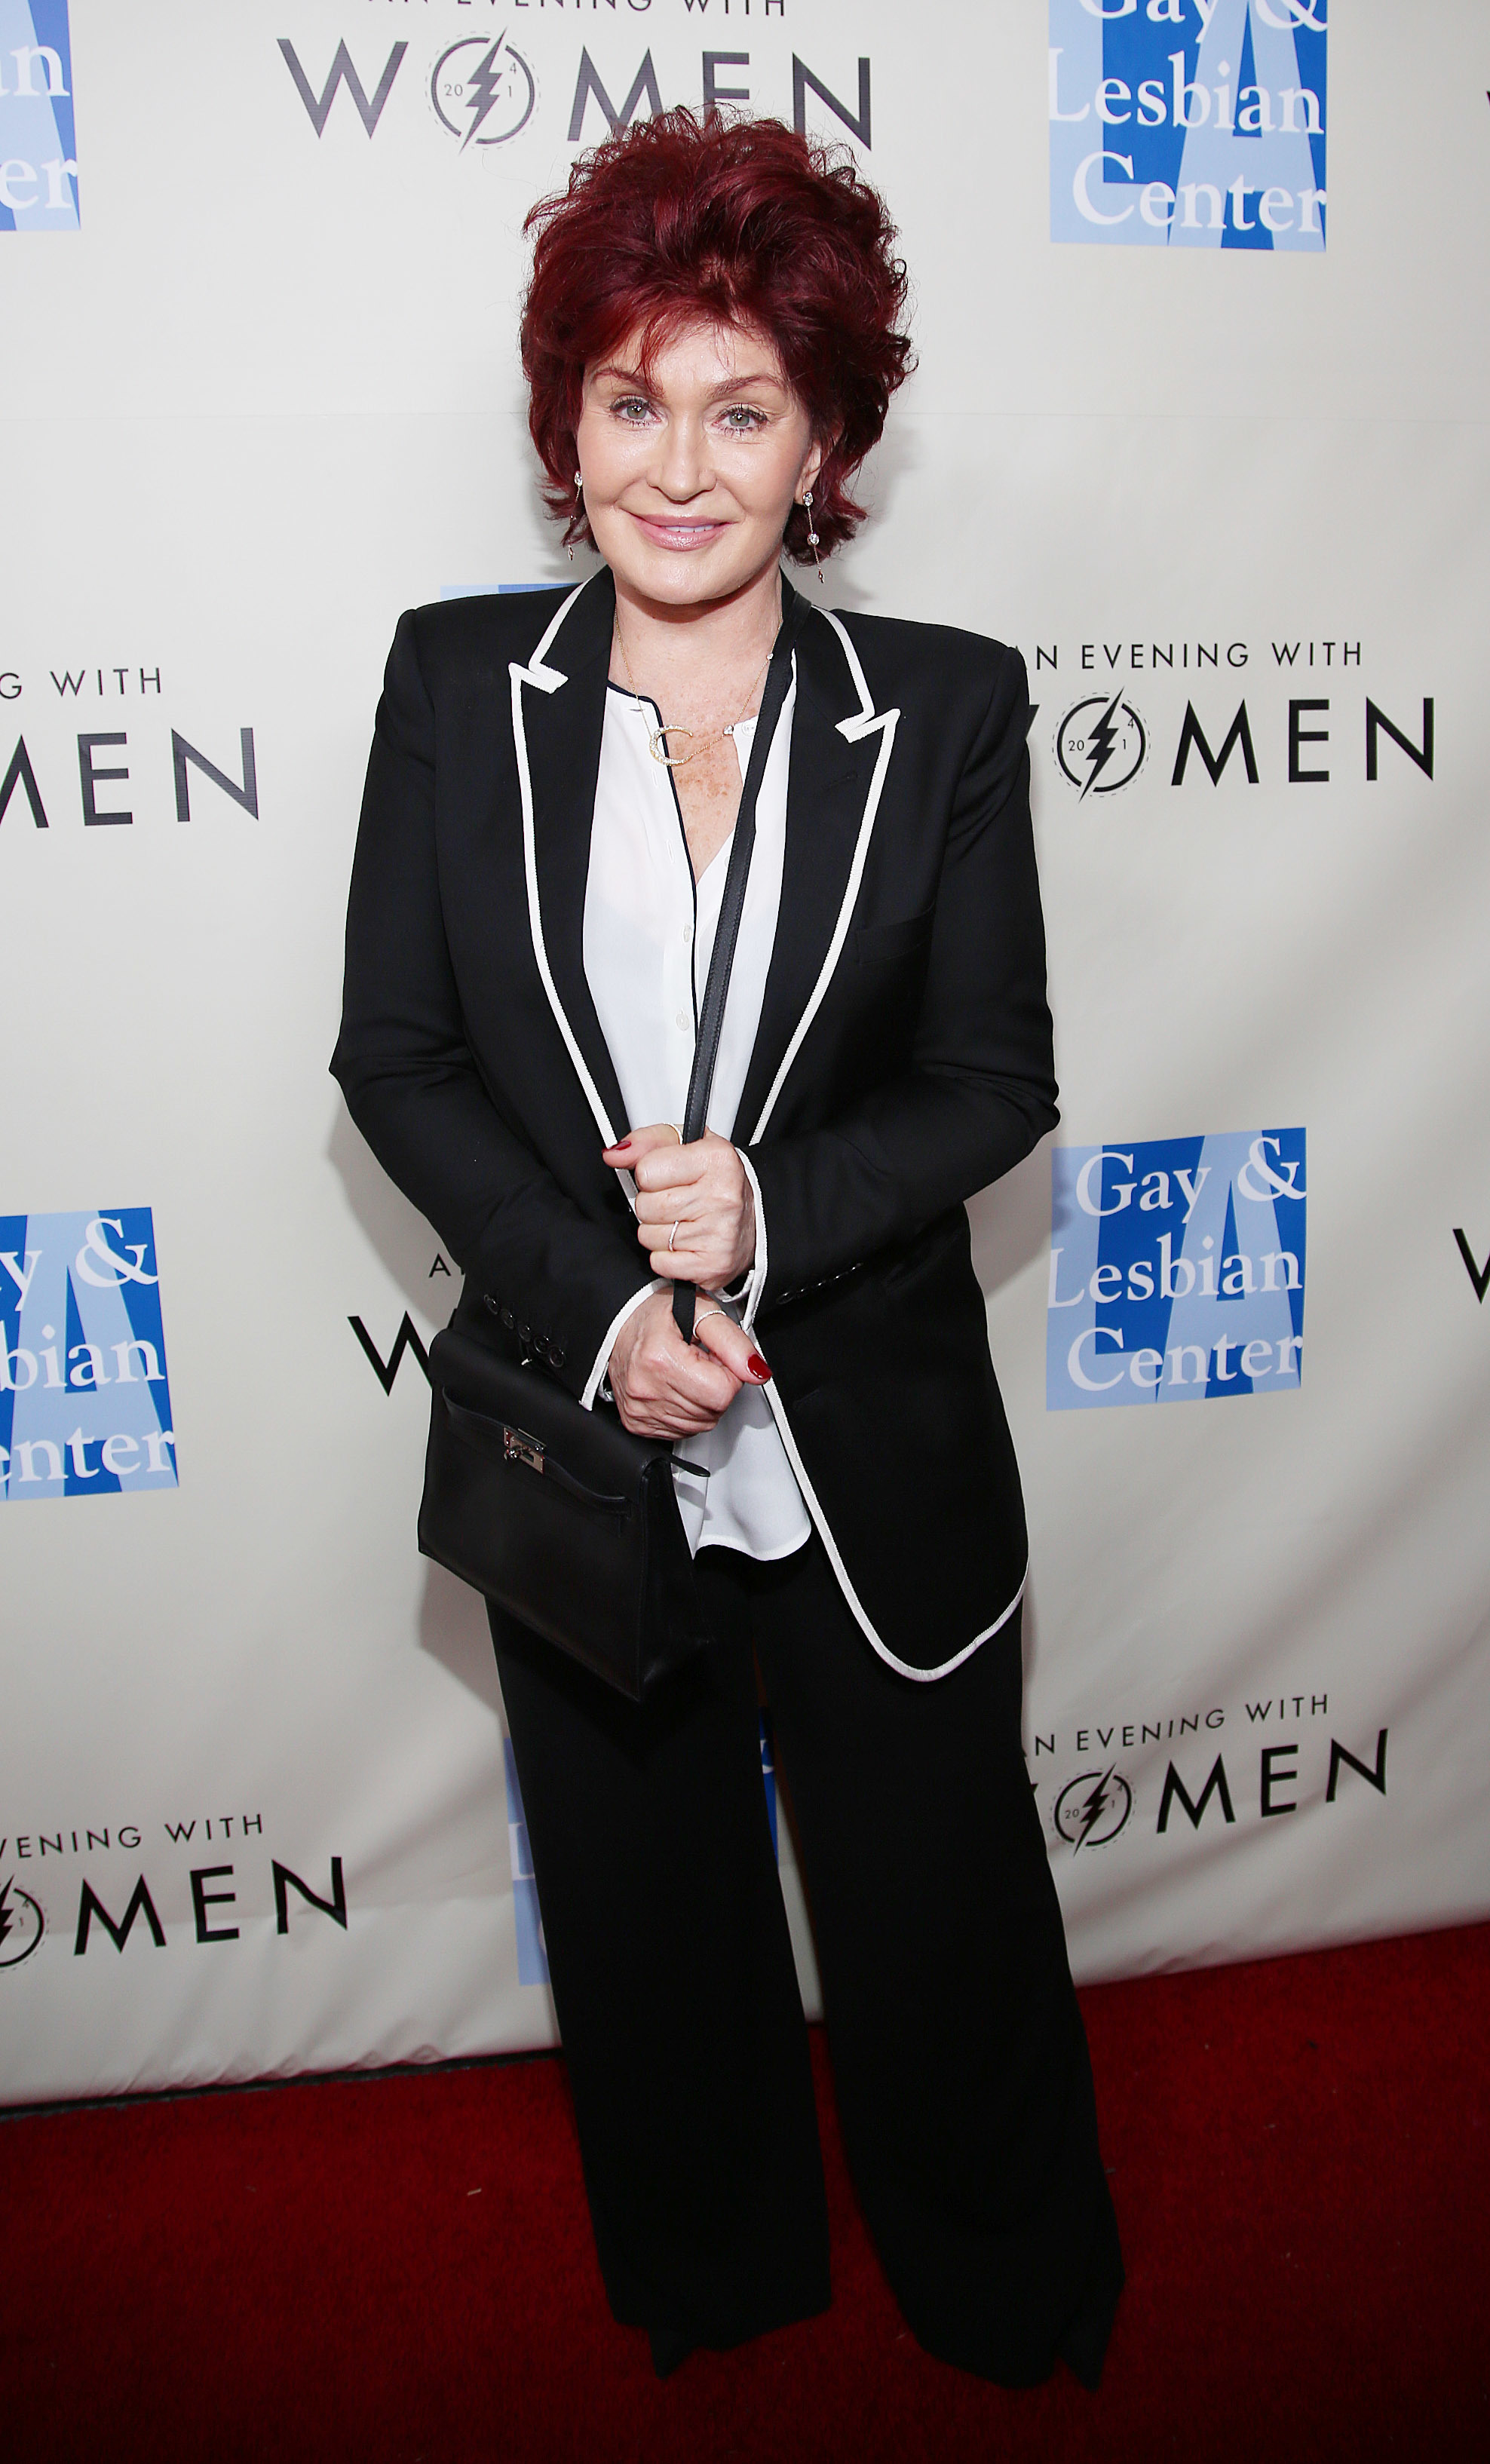 Sharon Osbourne apologizes for rape comment